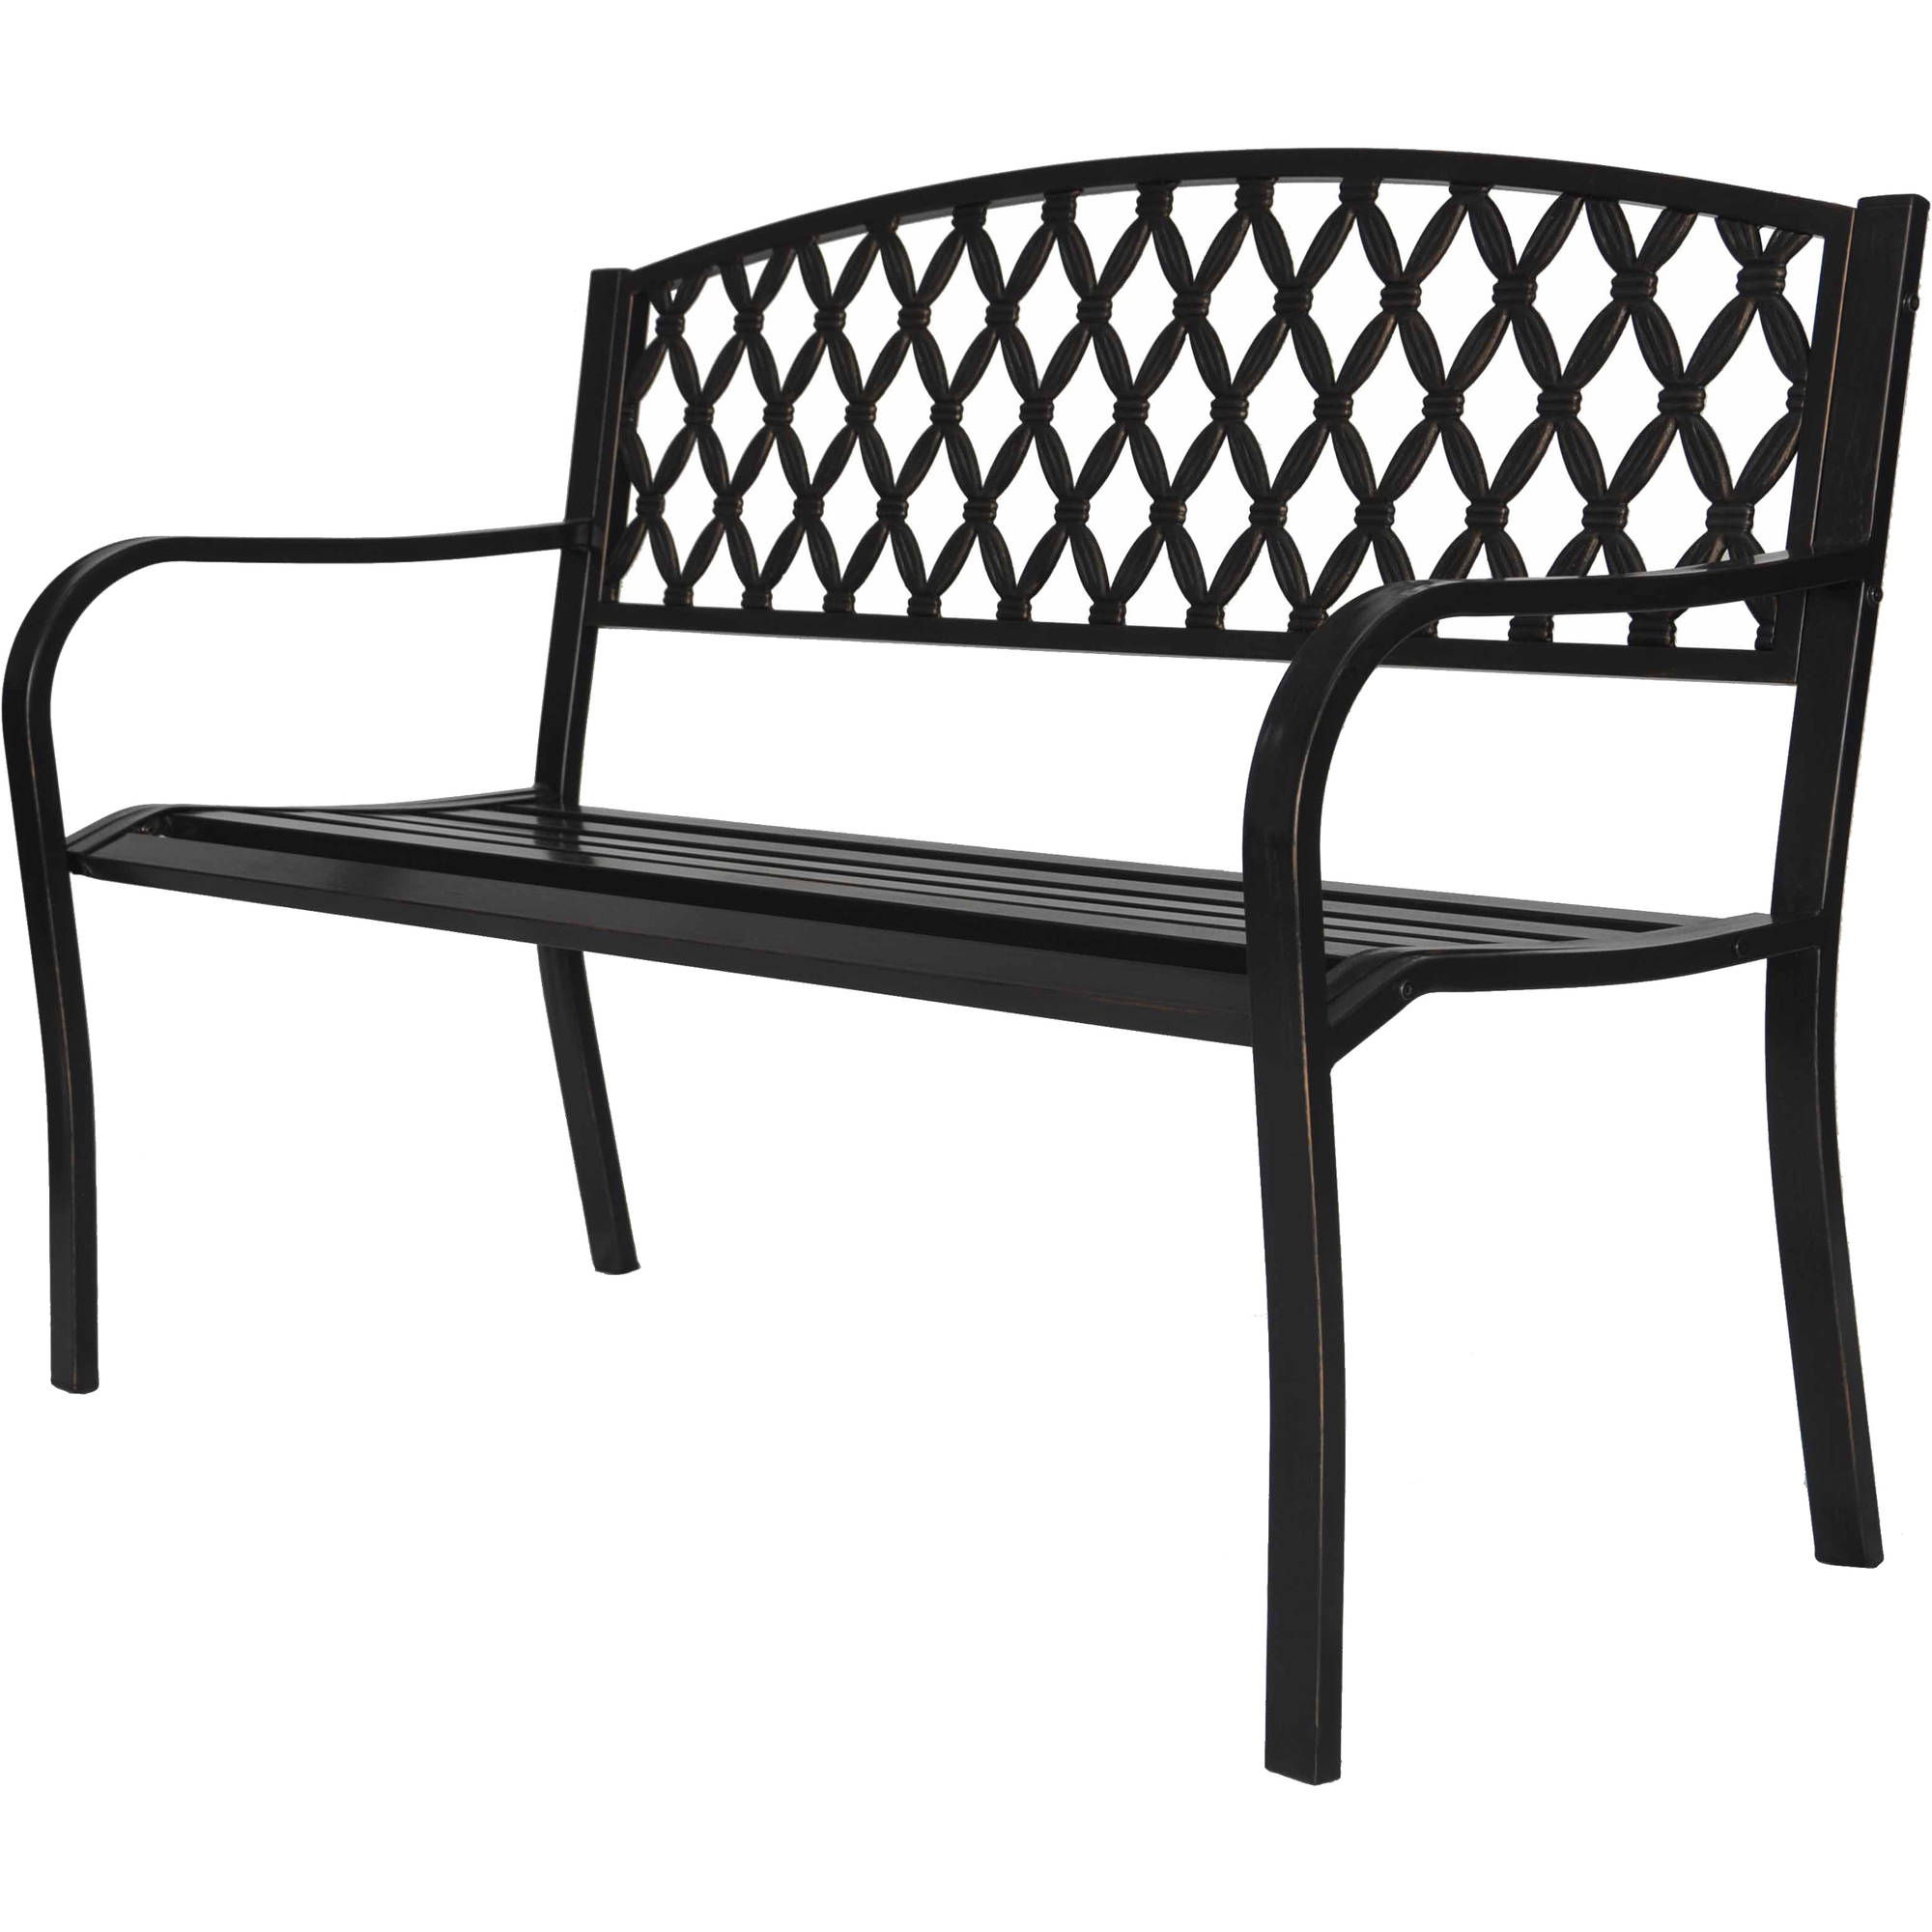 garden f strap outdoor img building iron sale forged org metal antique id bench furniture century for at